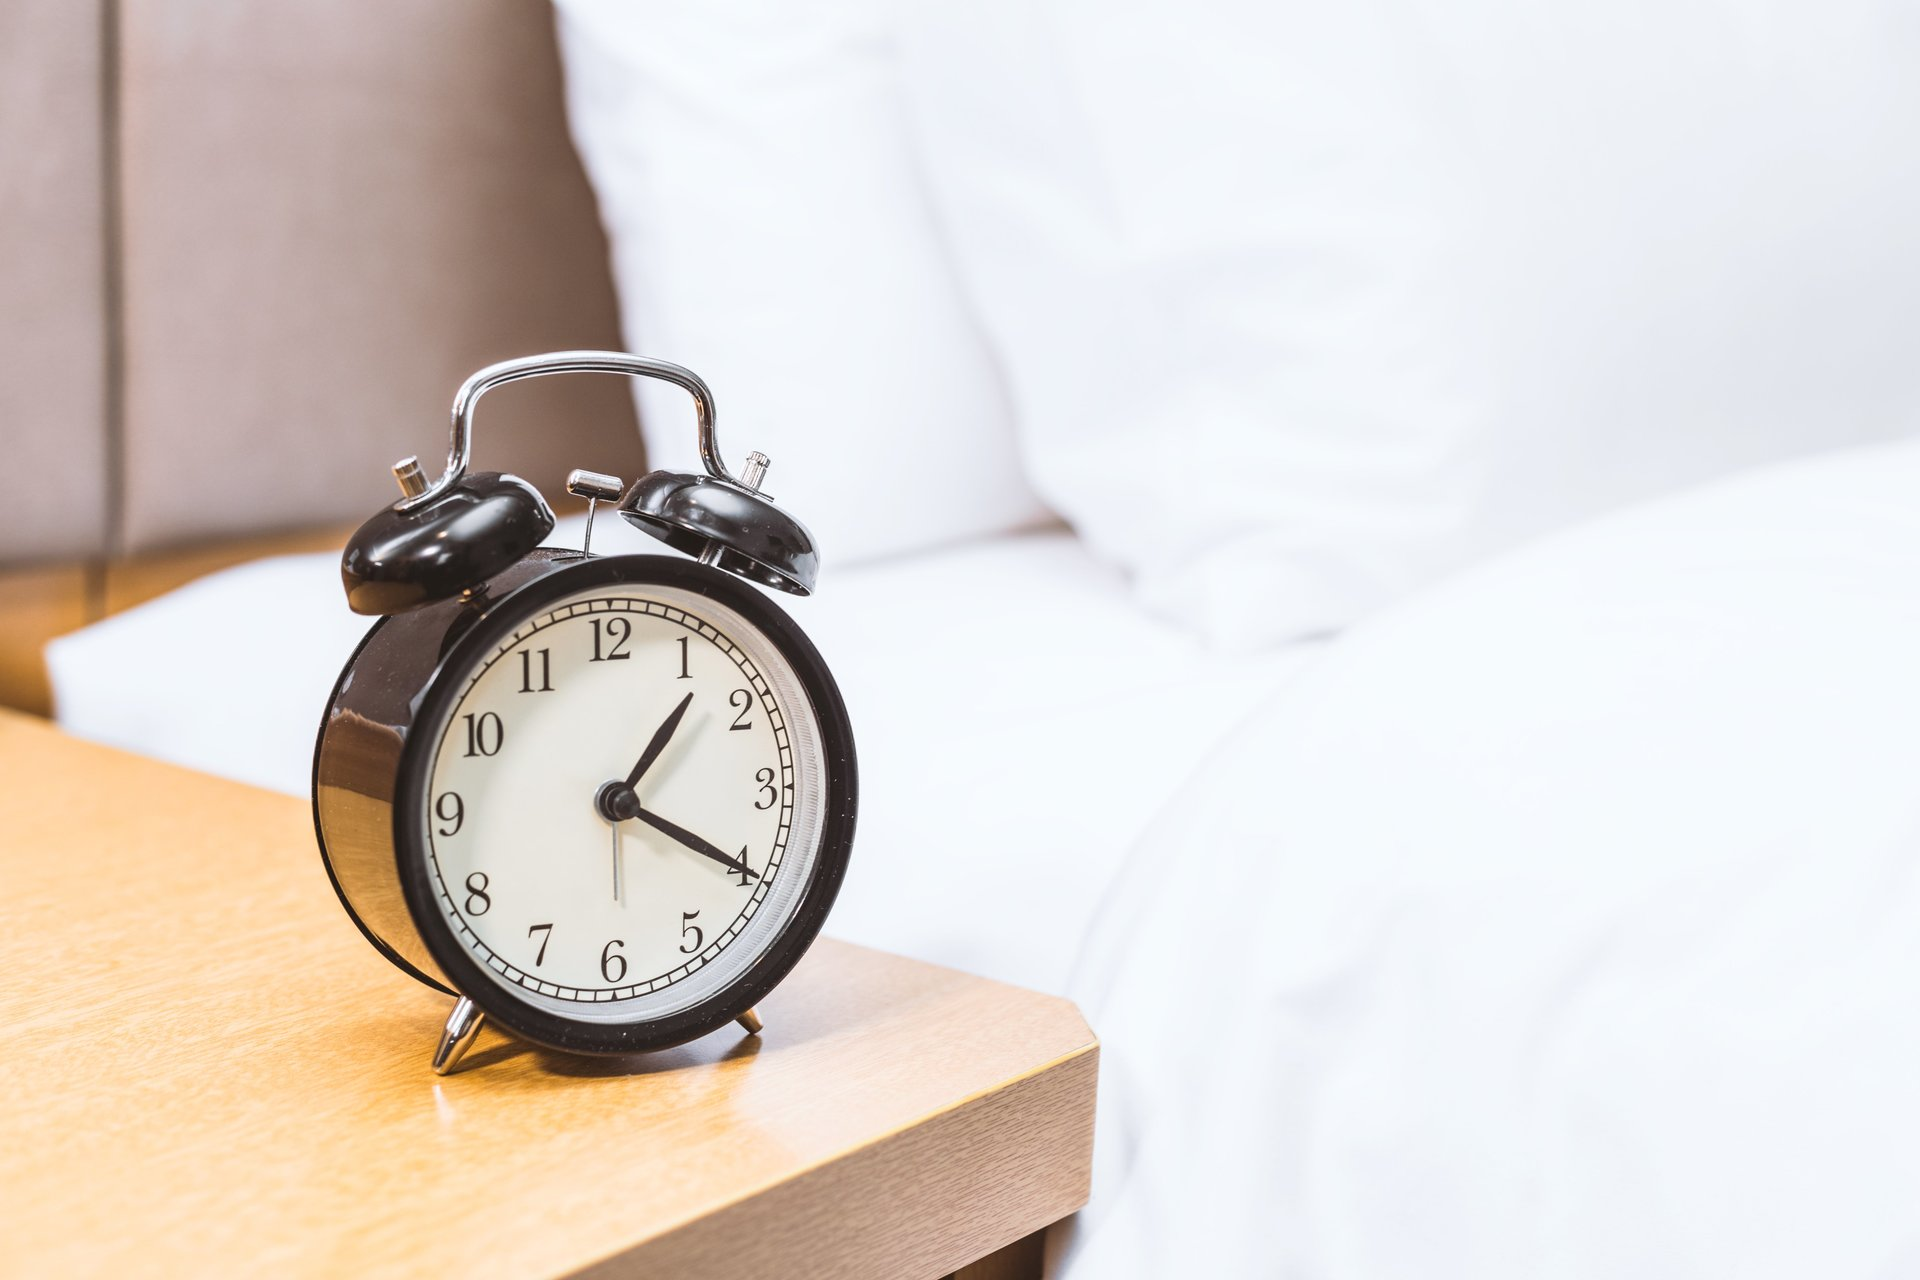 Morning routines to make your whole day WOW!